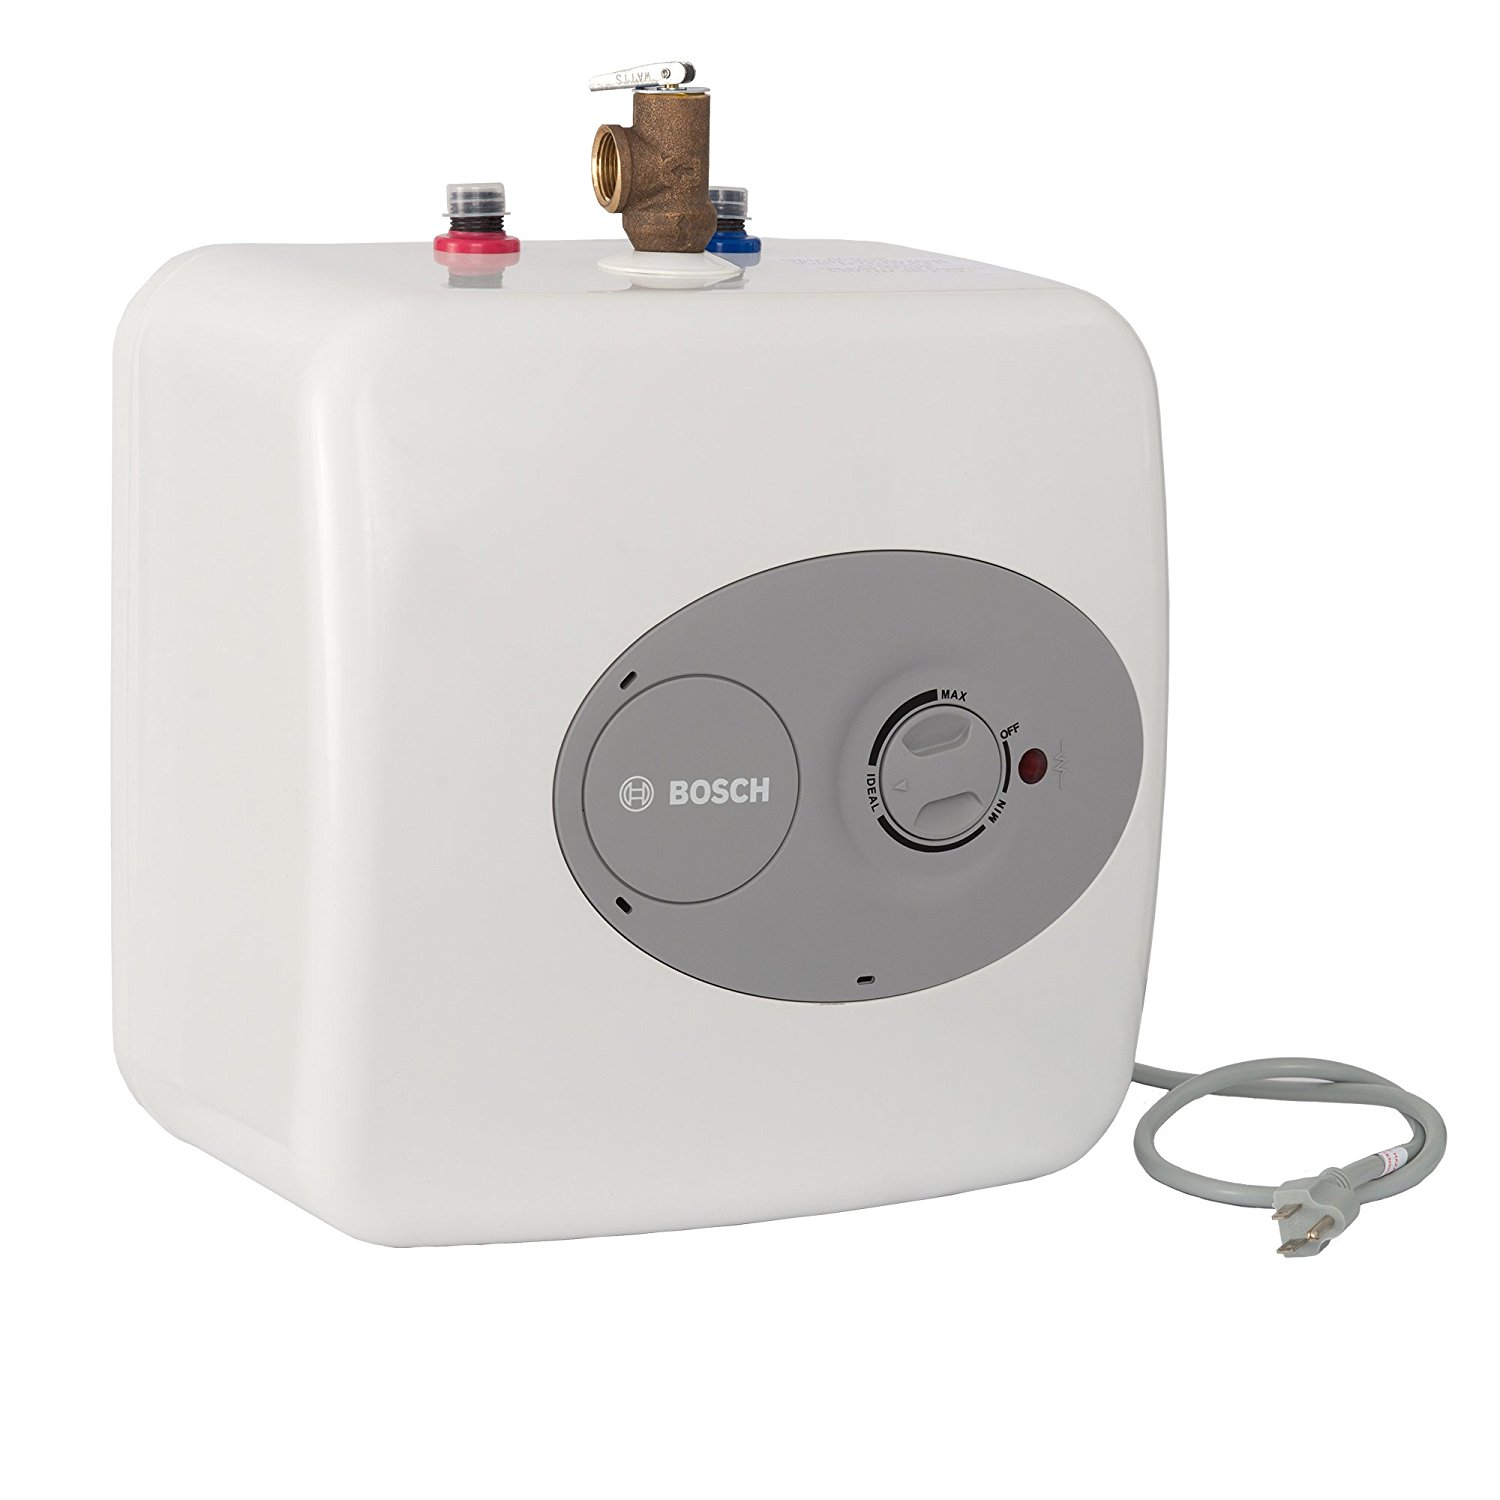 Top 10 Best Tankless Water Heaters in 2020